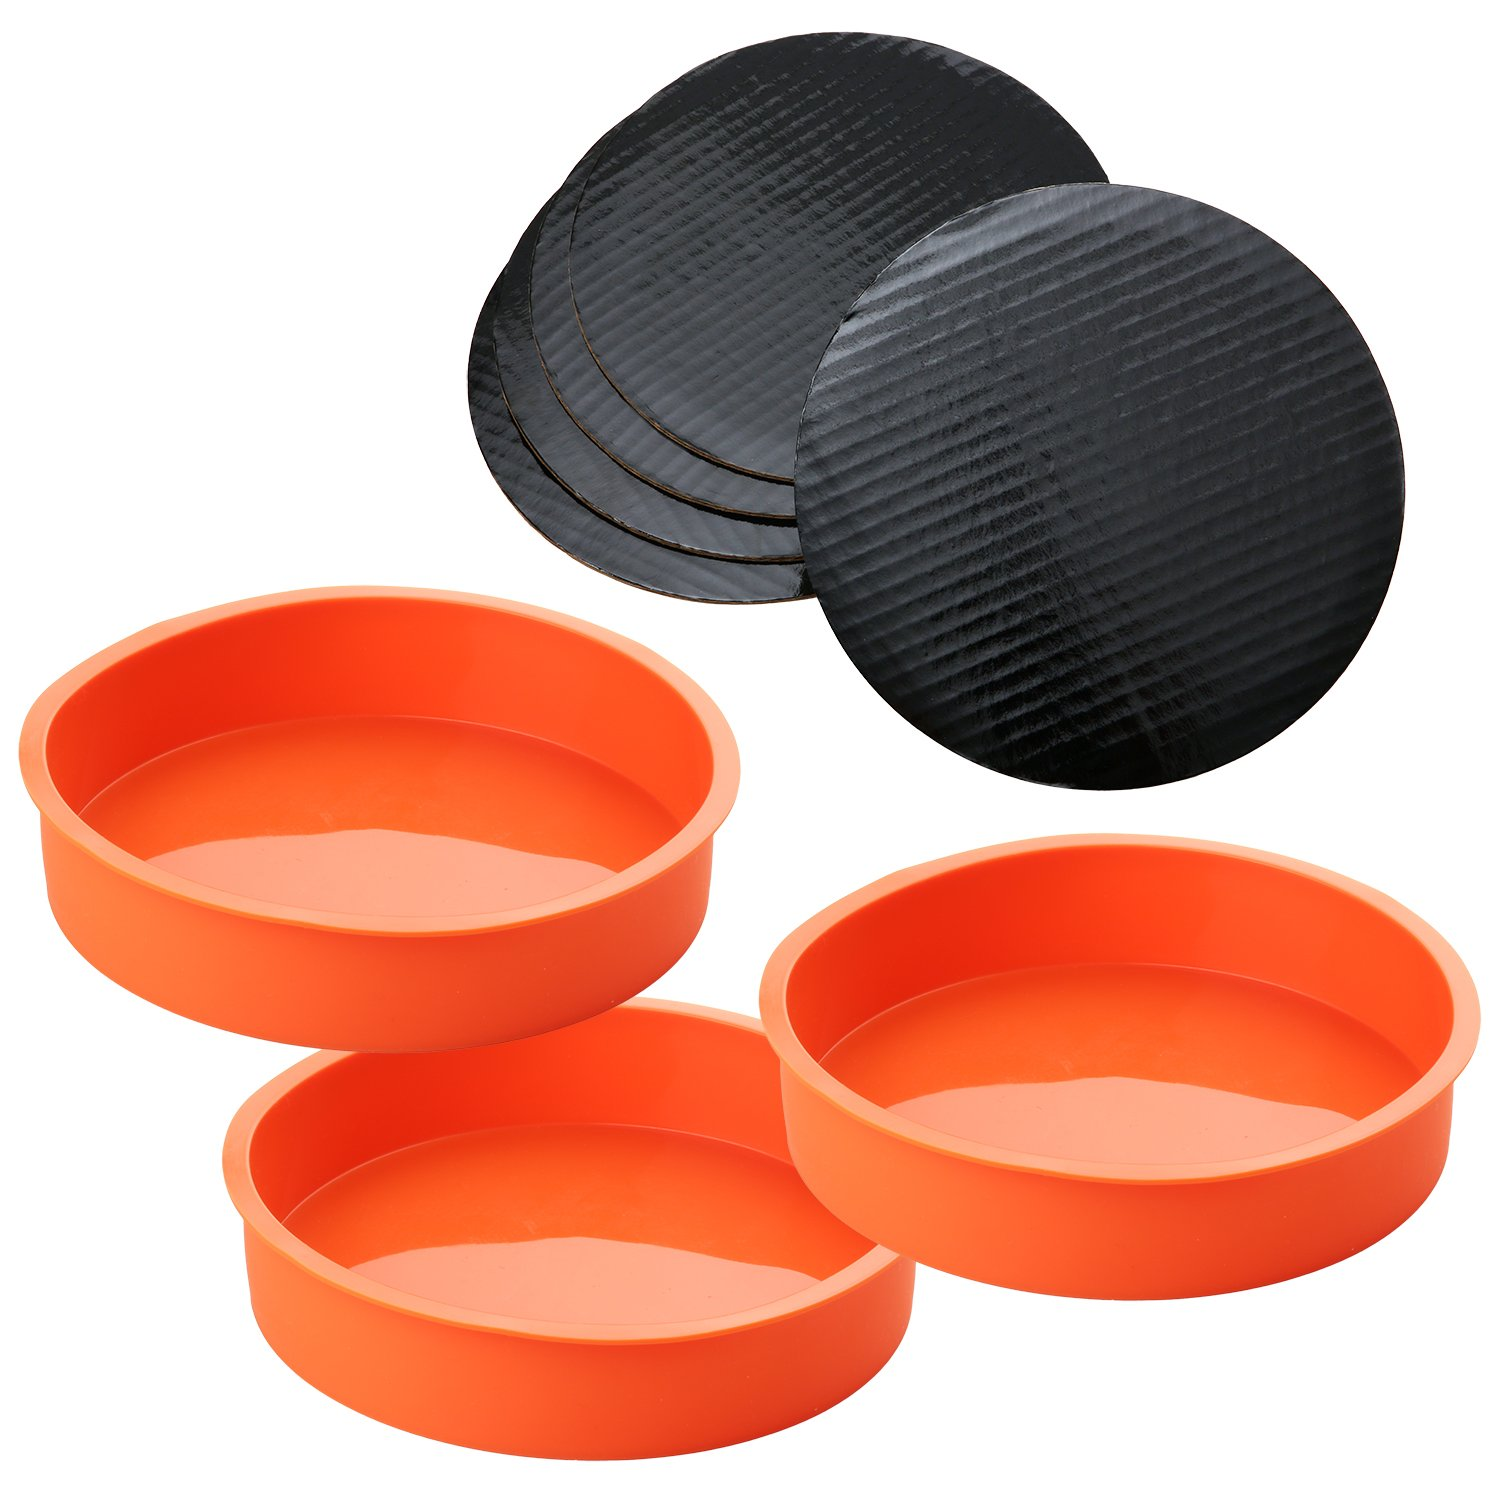 Set of 3 Round Silicone Mold Cake Baking Pans Includes 5 Laminated Grease Proof Cardboard Cake Circles A Baker and Cook